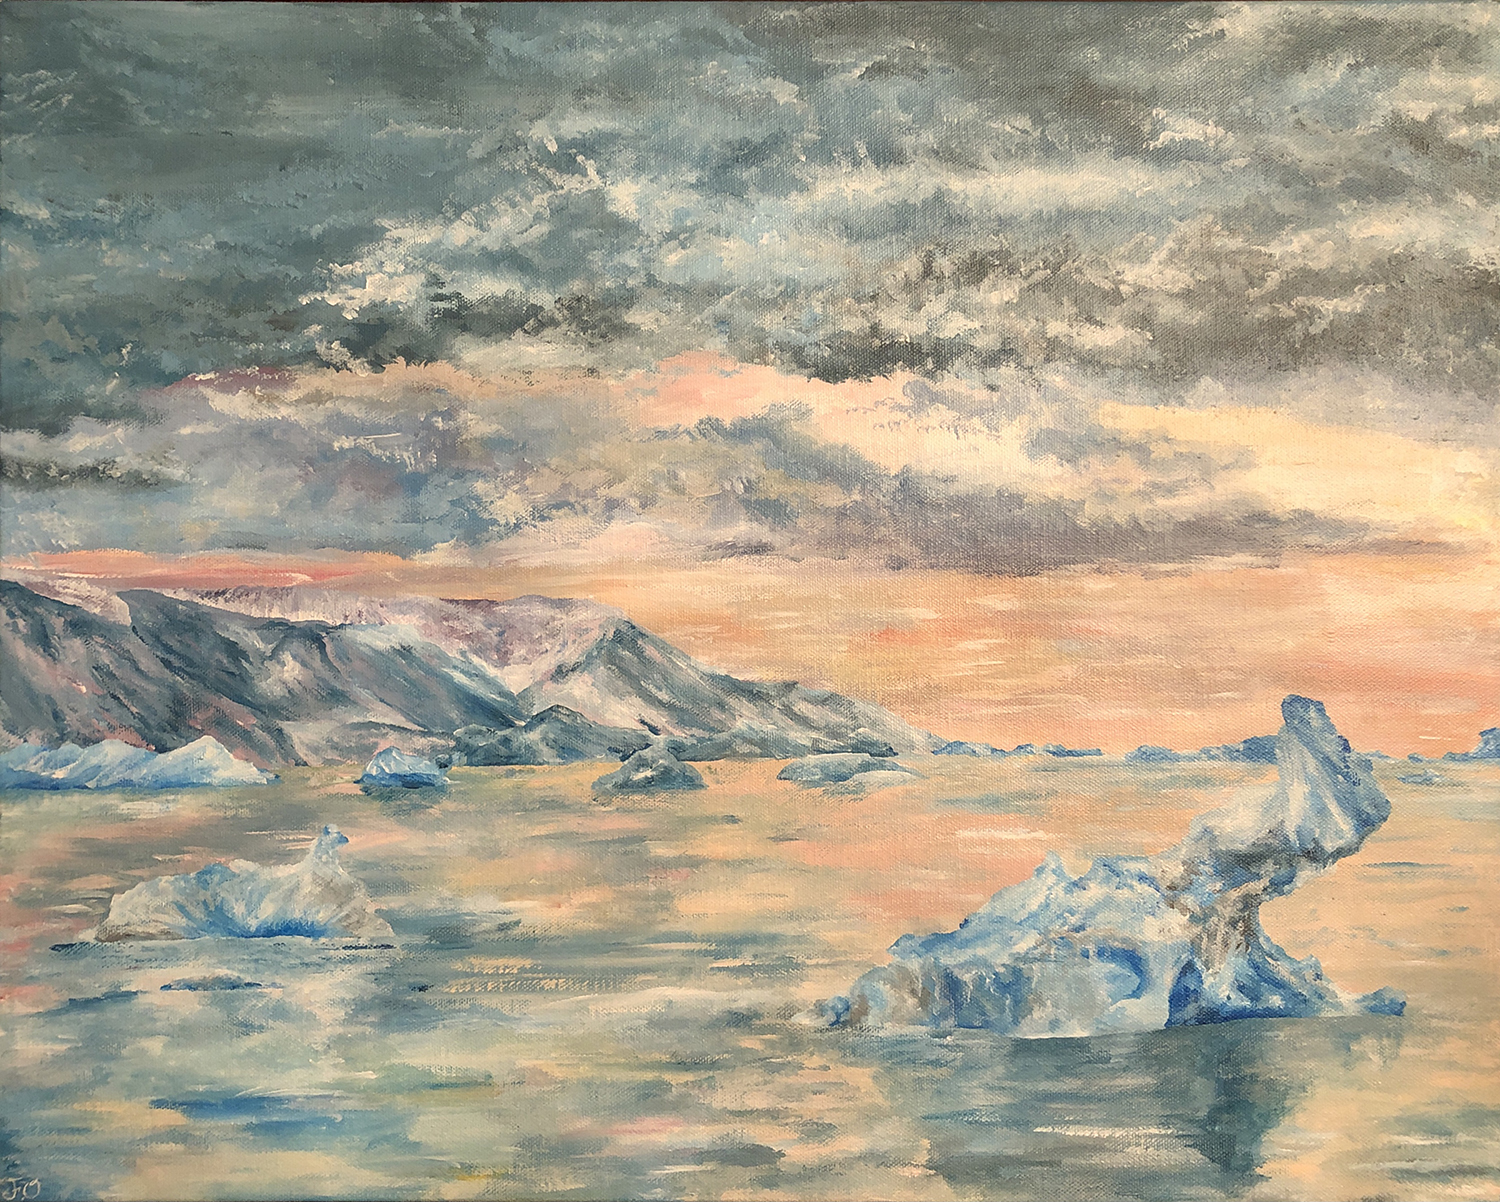 The Place Where the Ice Never Melts by Fifunmi Ogundipe, acrylic on canvas - Innisdale Secondary School